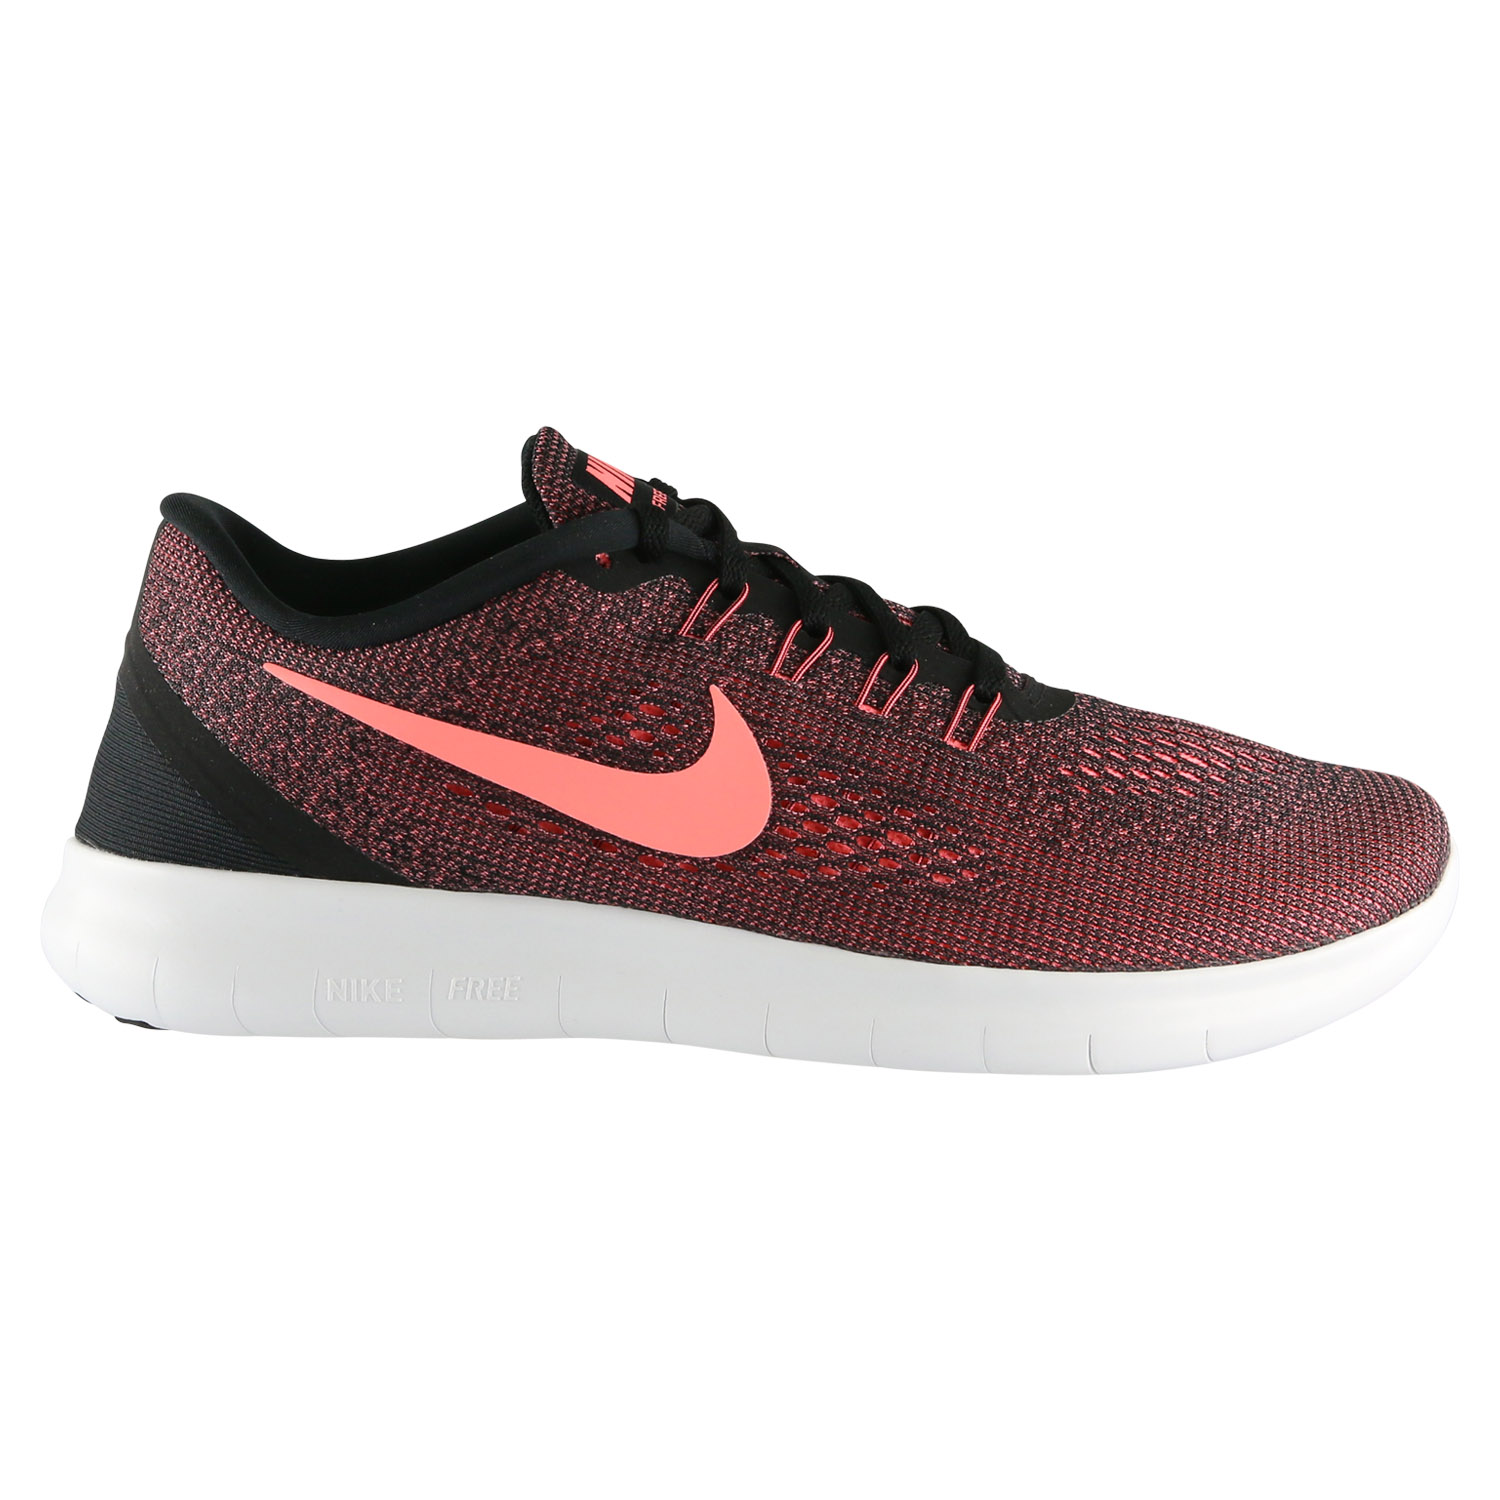 nike free rn run schuhe turnschuhe sneaker laufschuhe. Black Bedroom Furniture Sets. Home Design Ideas